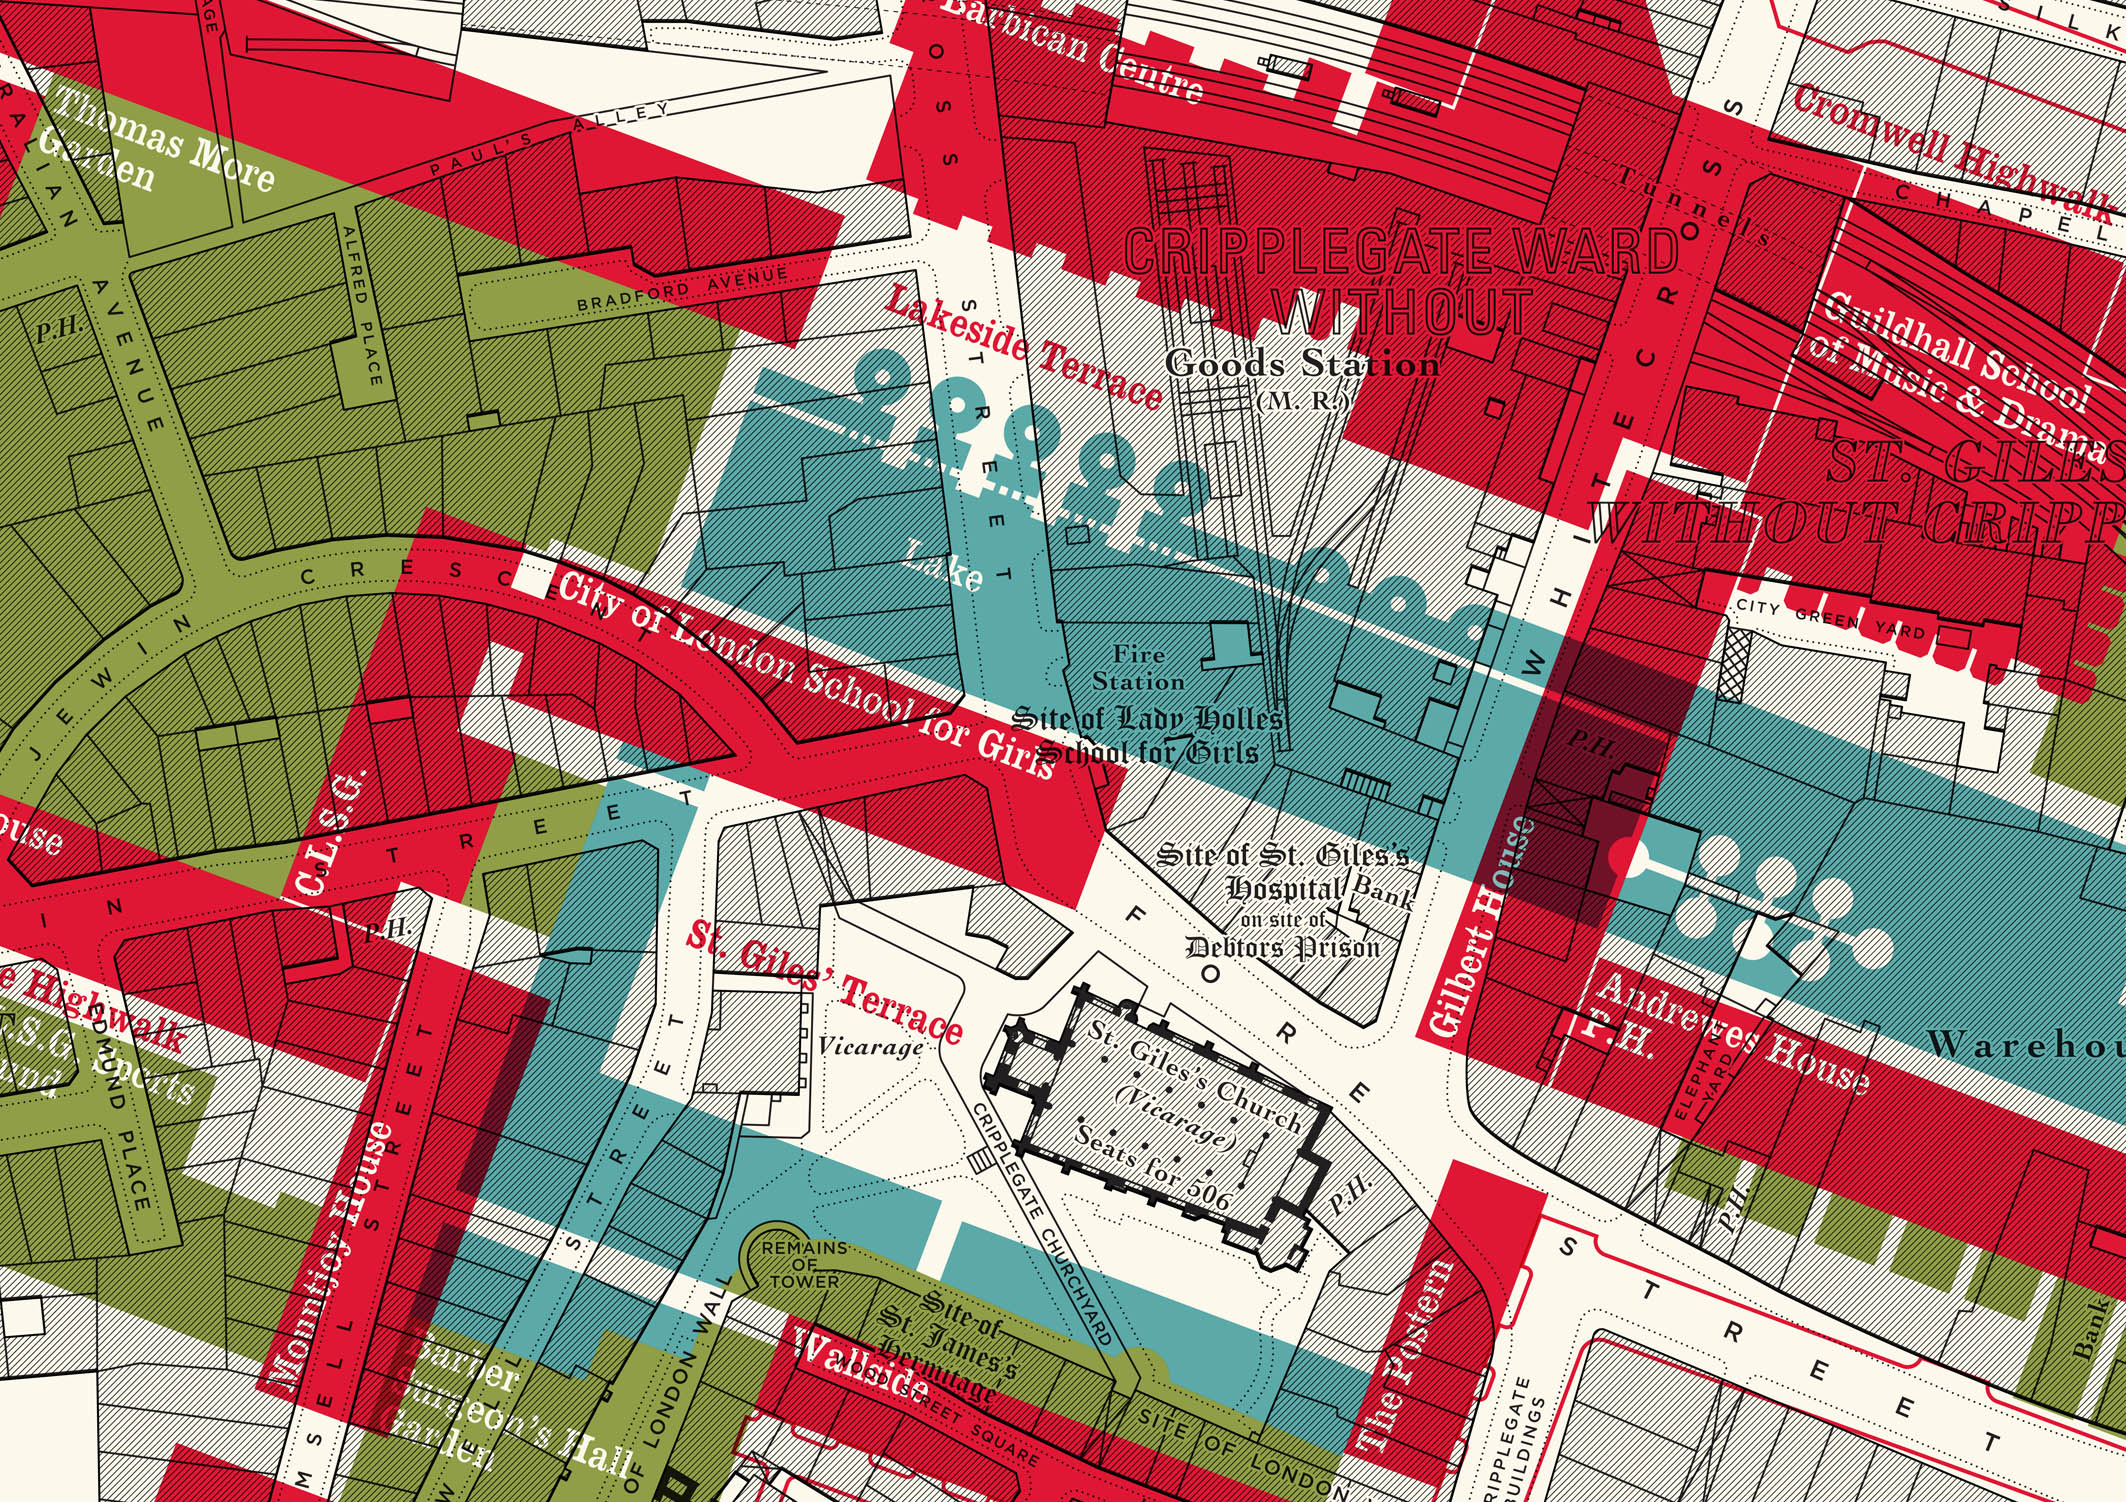 Palimpsest Plans - The overlap of the Barbican plan on the former matrix of streets that populated the Clerkenwell area. The place where architecture meets archeology. Redefining new streetscapes whilst resetting the buildings that remain.